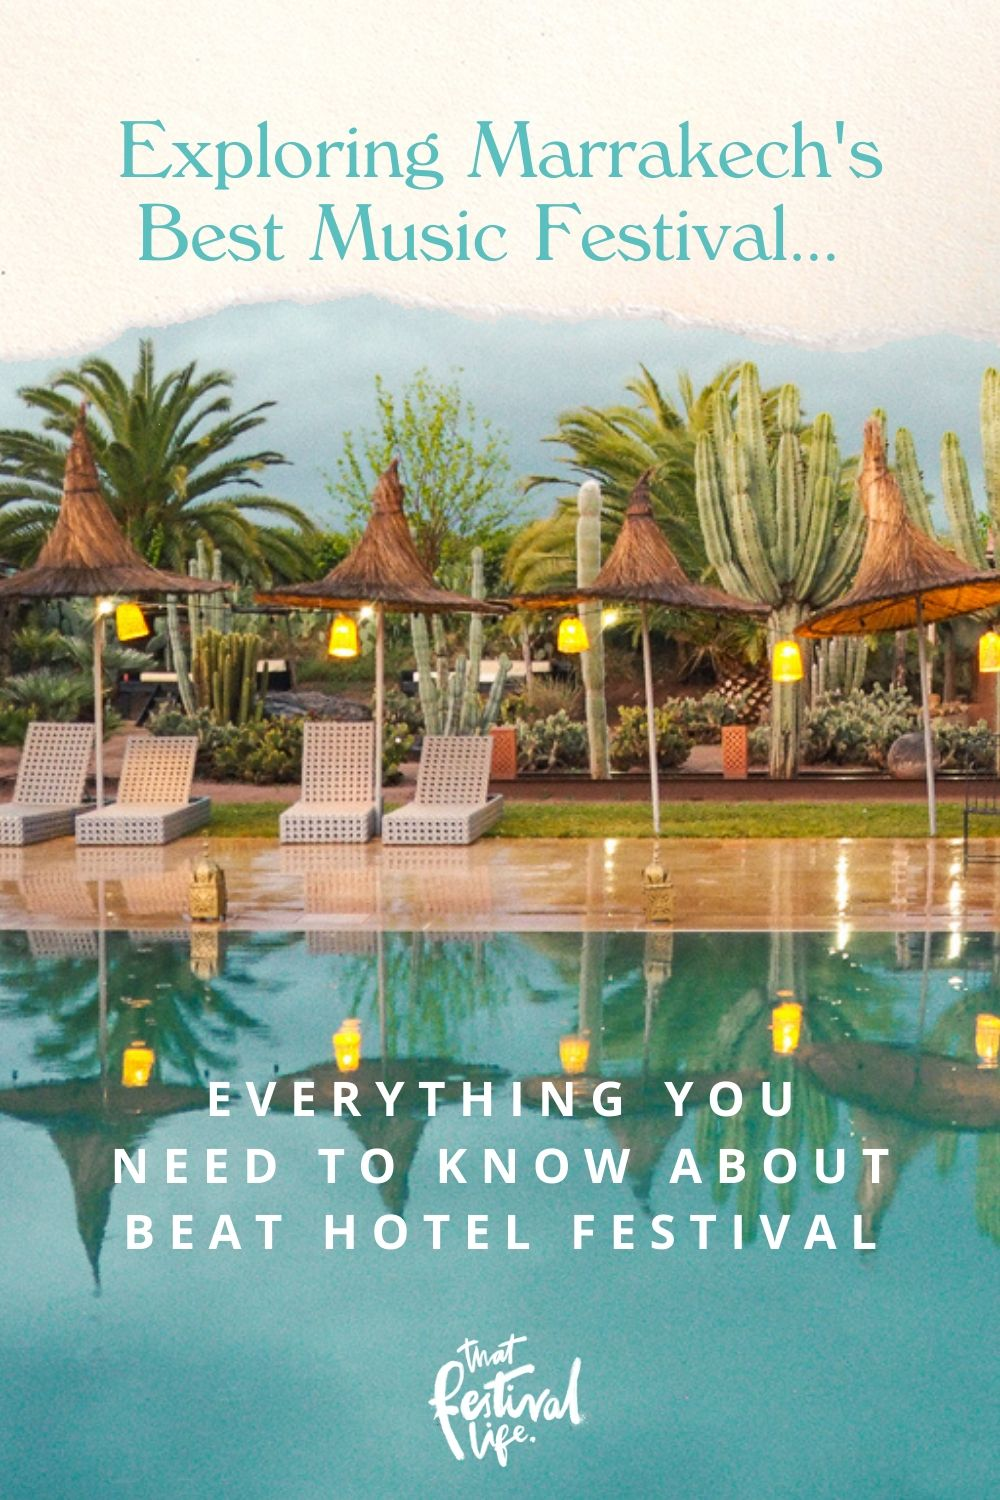 Everything you need to know about Beat Hotel Festival, the magical 4 day party in a Marrakech Riad | How to get there, what to bring, what its like & more!